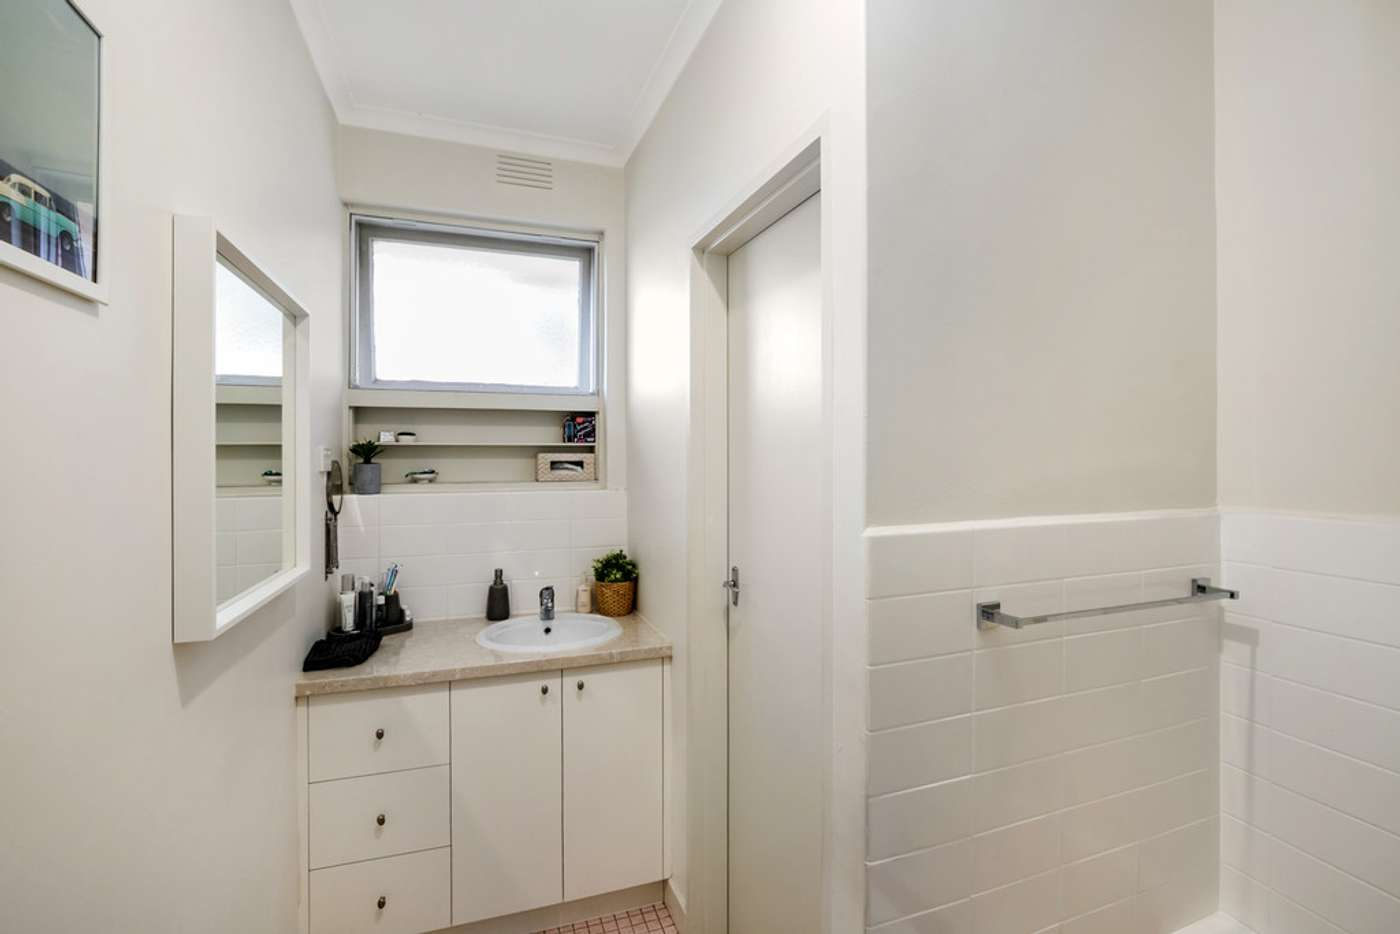 Seventh view of Homely apartment listing, 8/61 Balmoral Avenue, Springvale VIC 3171